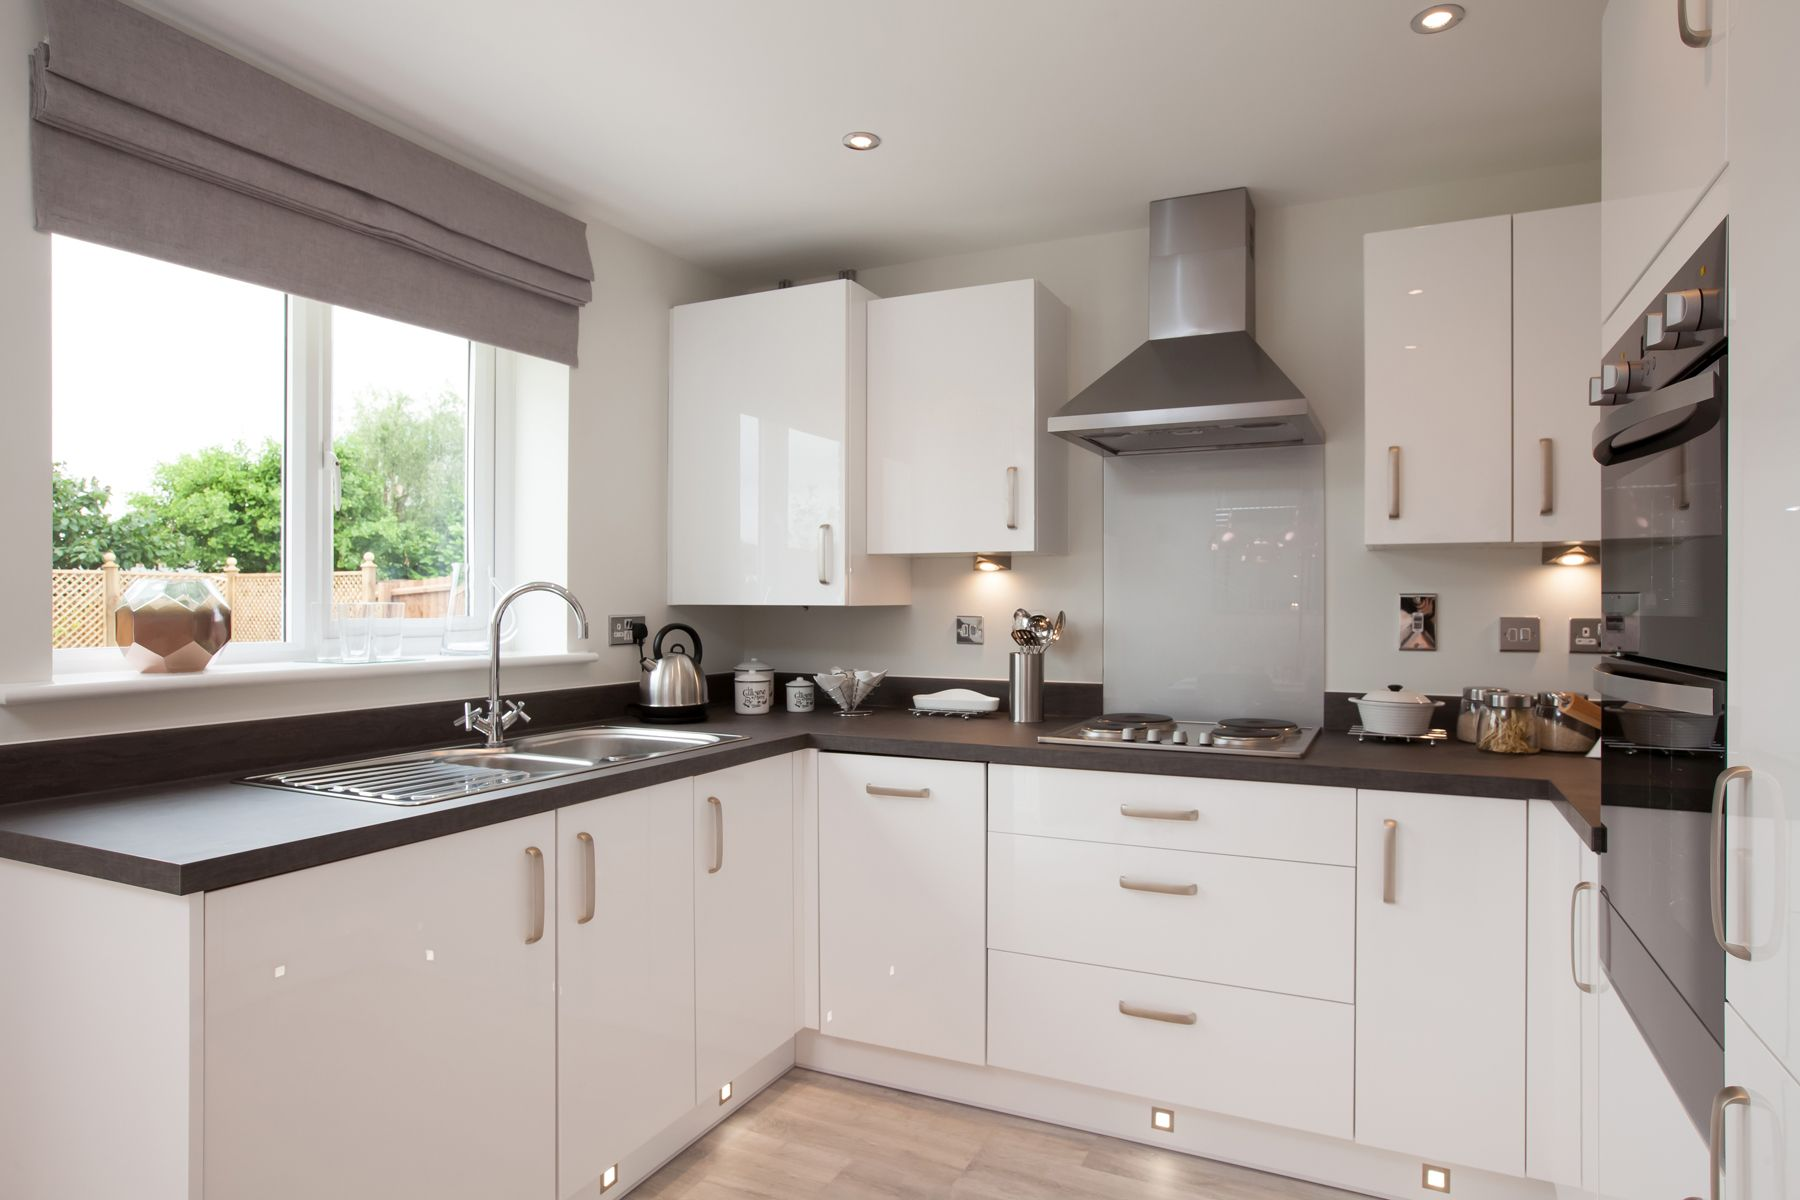 TW Exeter - Chy An Dowr - Gosford example kitchen